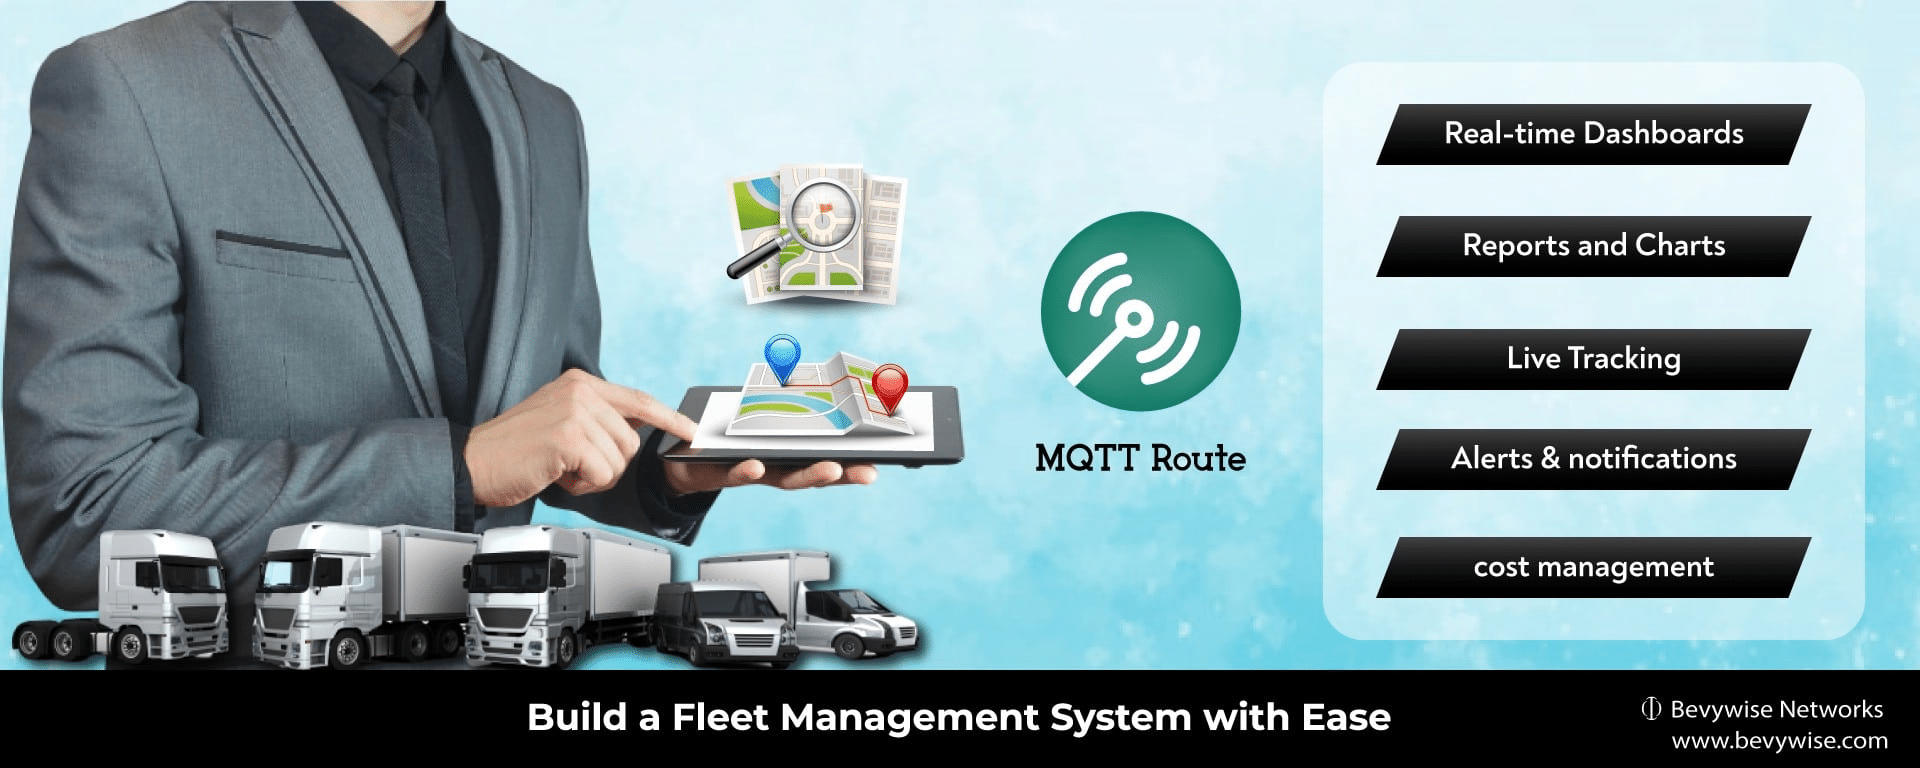 Build a Fleet Management System with Ease